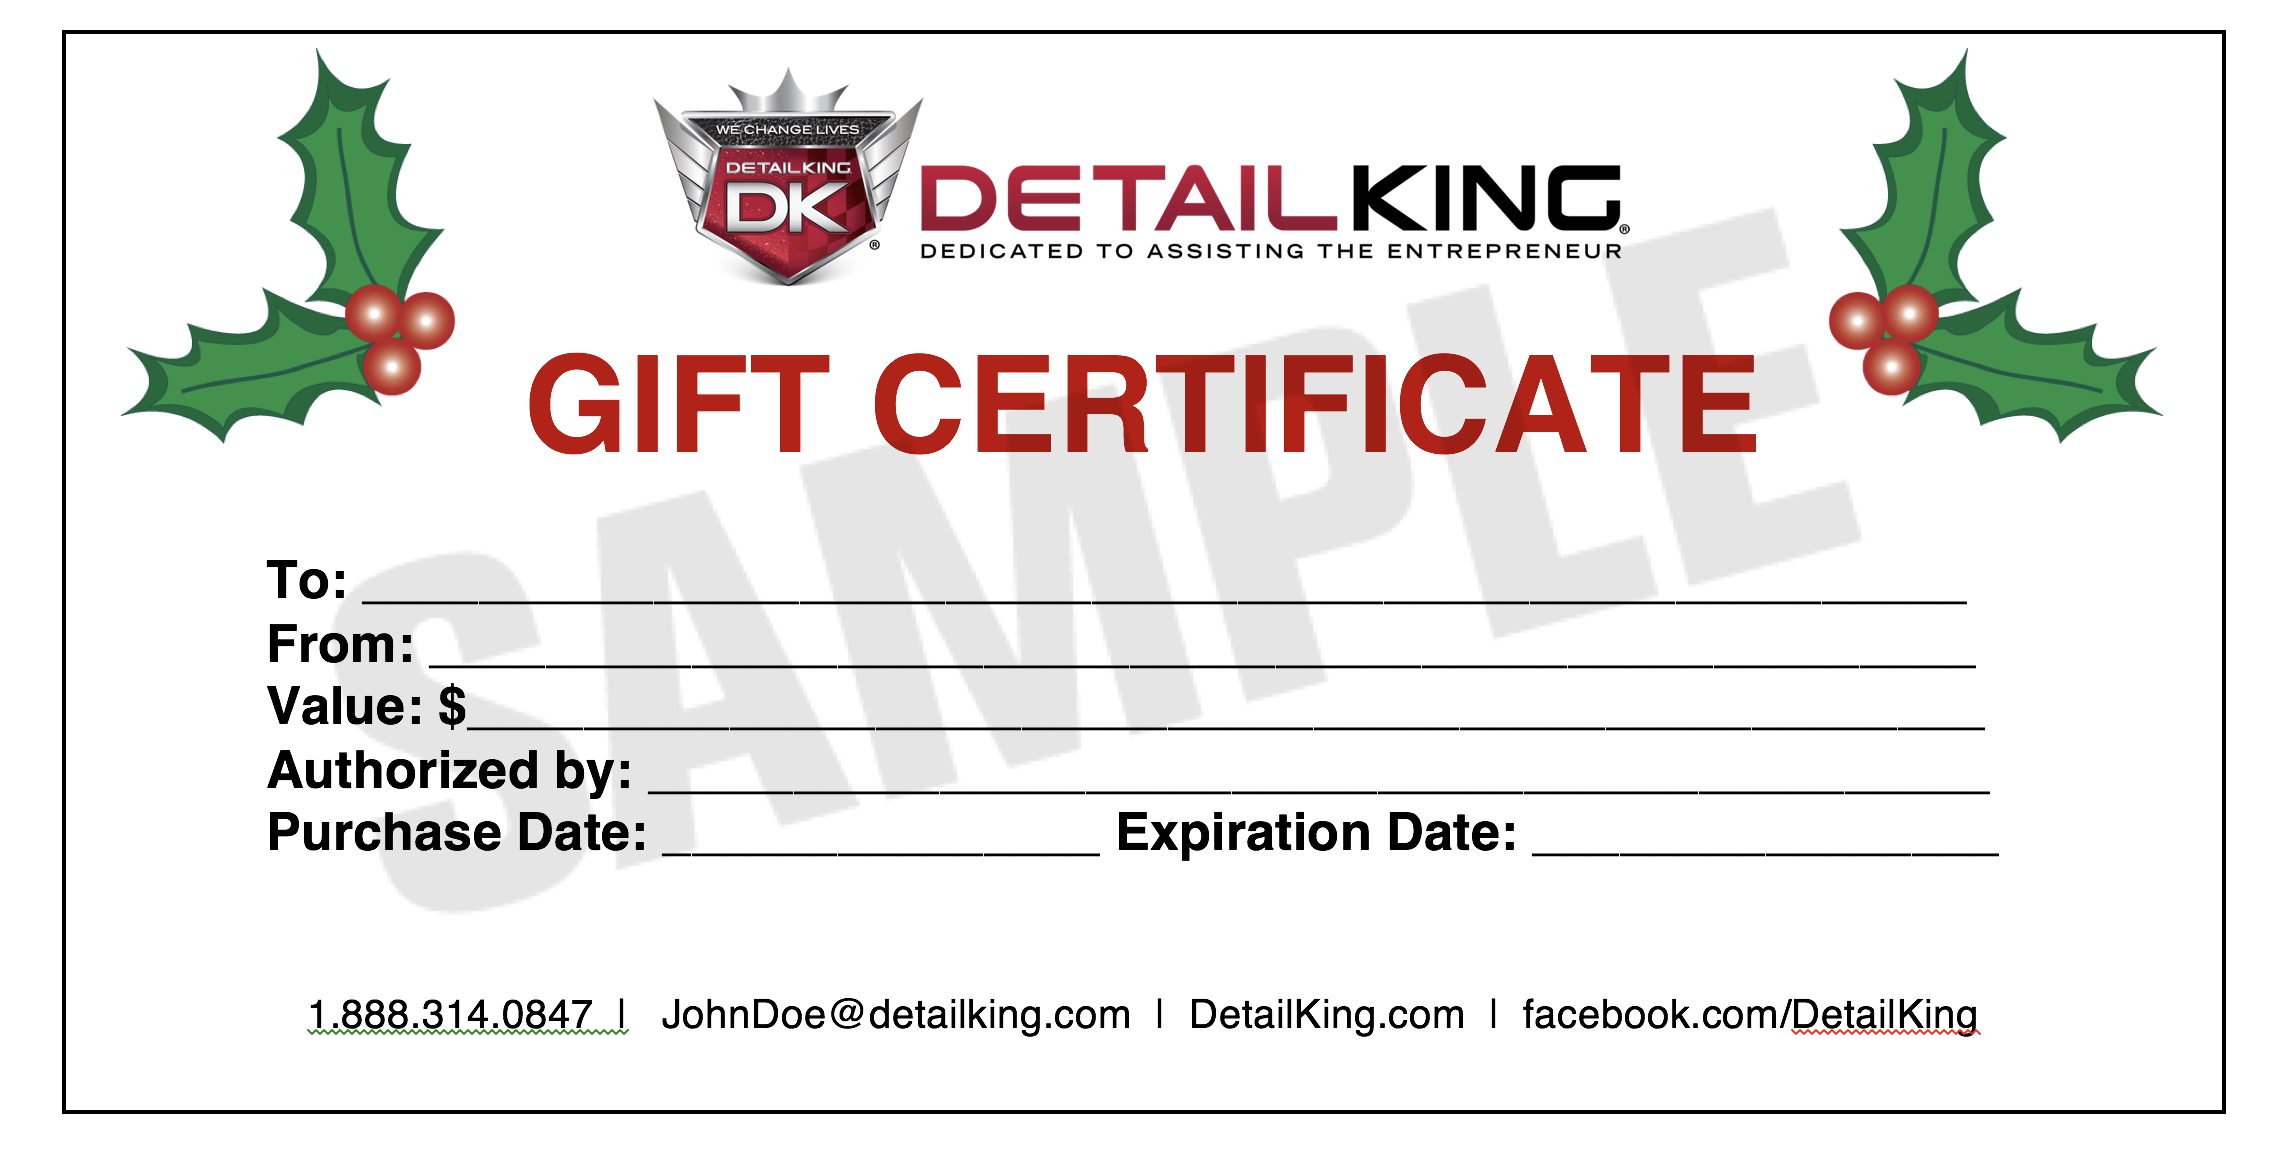 Detail king special offers and promotions auto detailing for Auto detailing gift certificate template